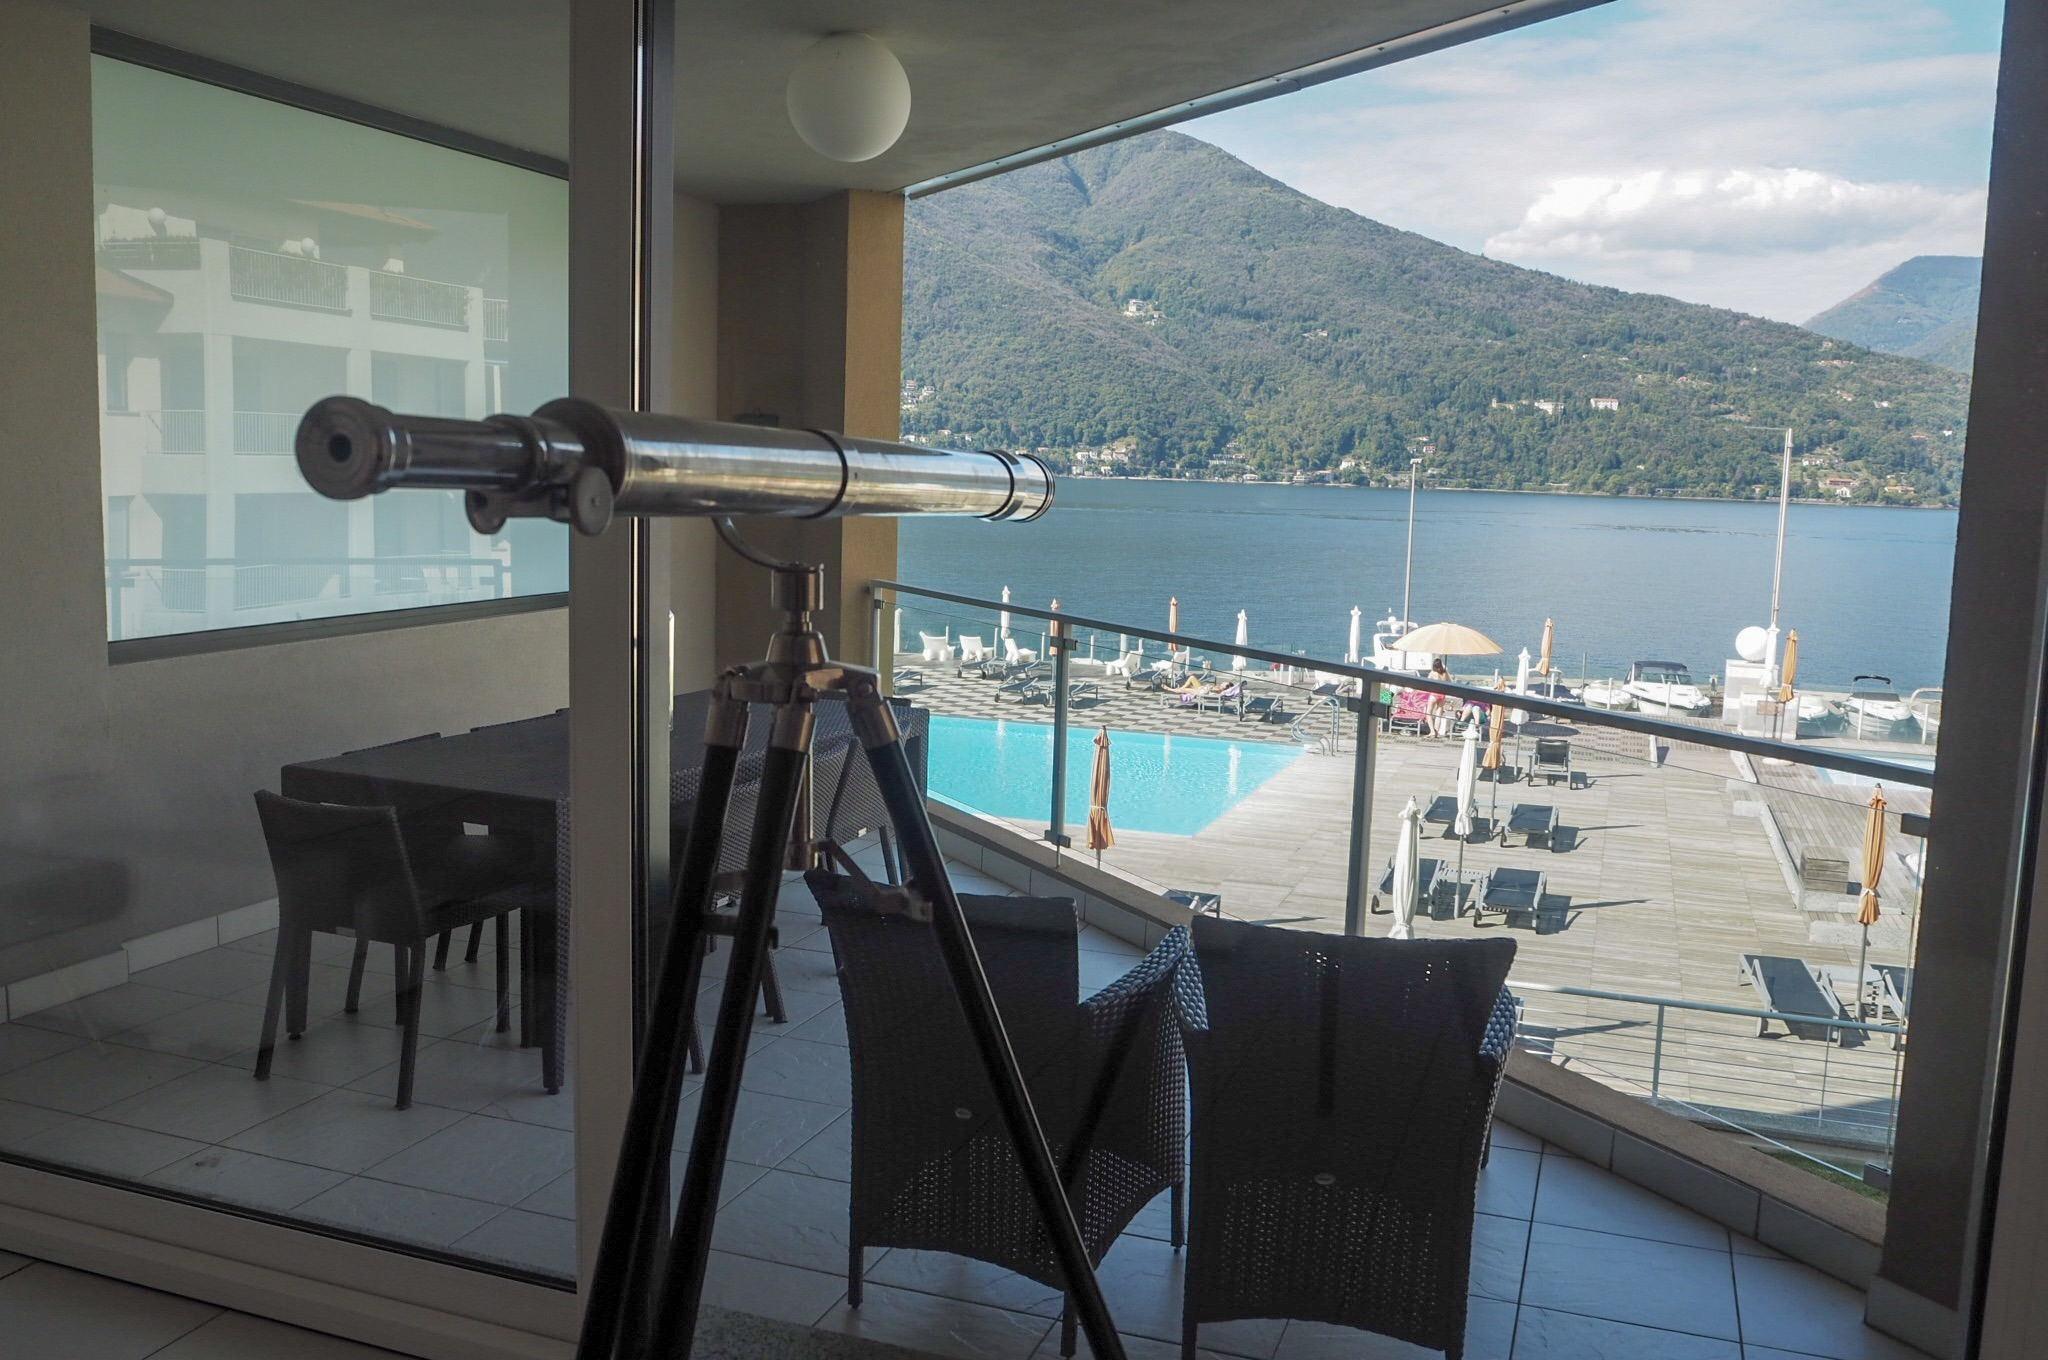 Apartments views to the pool at Golfo Gabella Resort Lake Maggiore